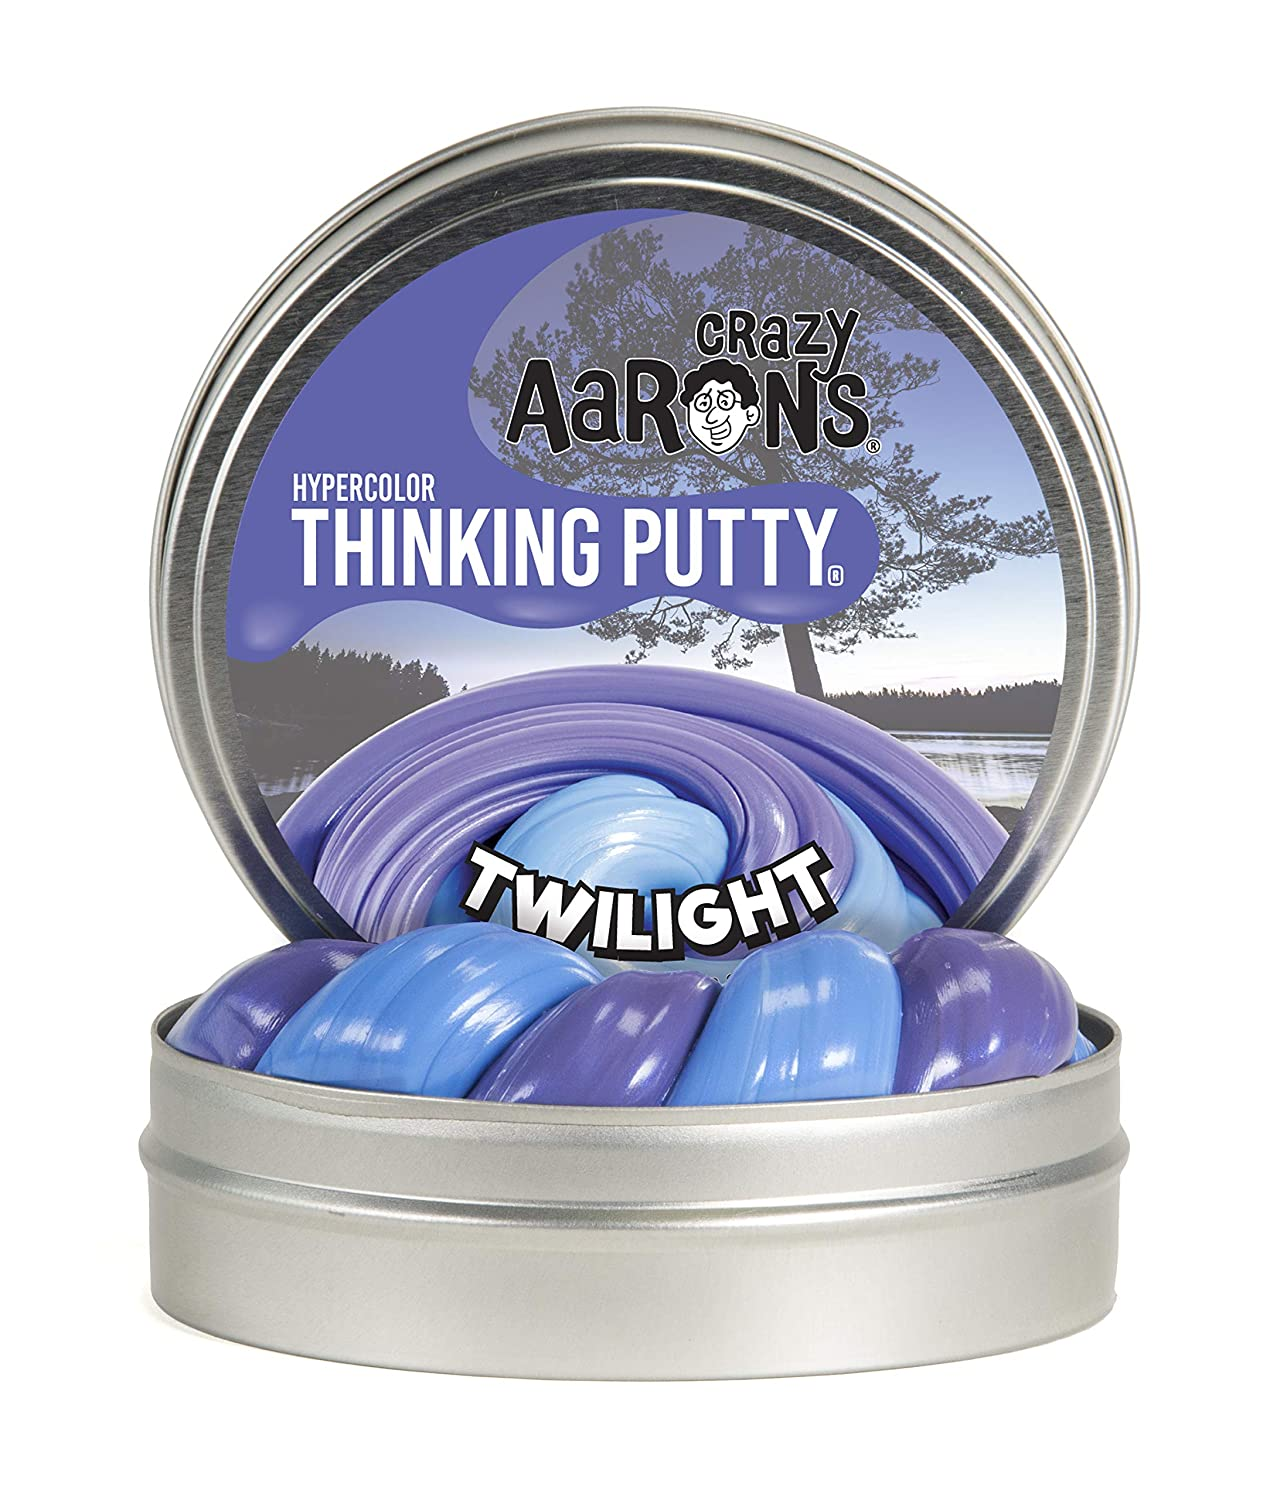 Crazy Aaron's Thinking Putty, 3.2 Ounce, Hypercolor Twilight